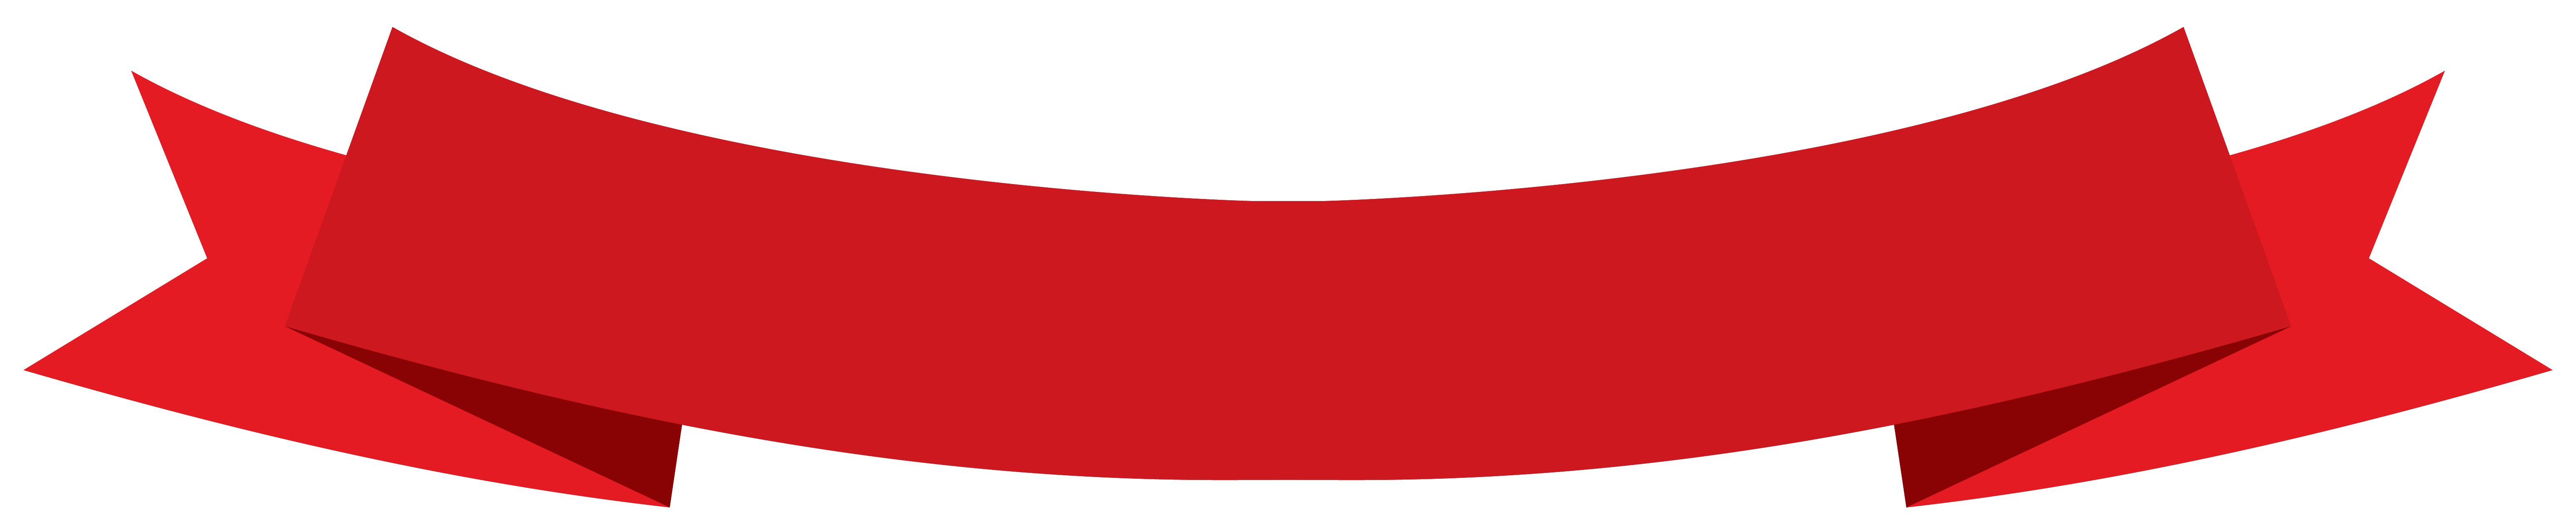 banner box png